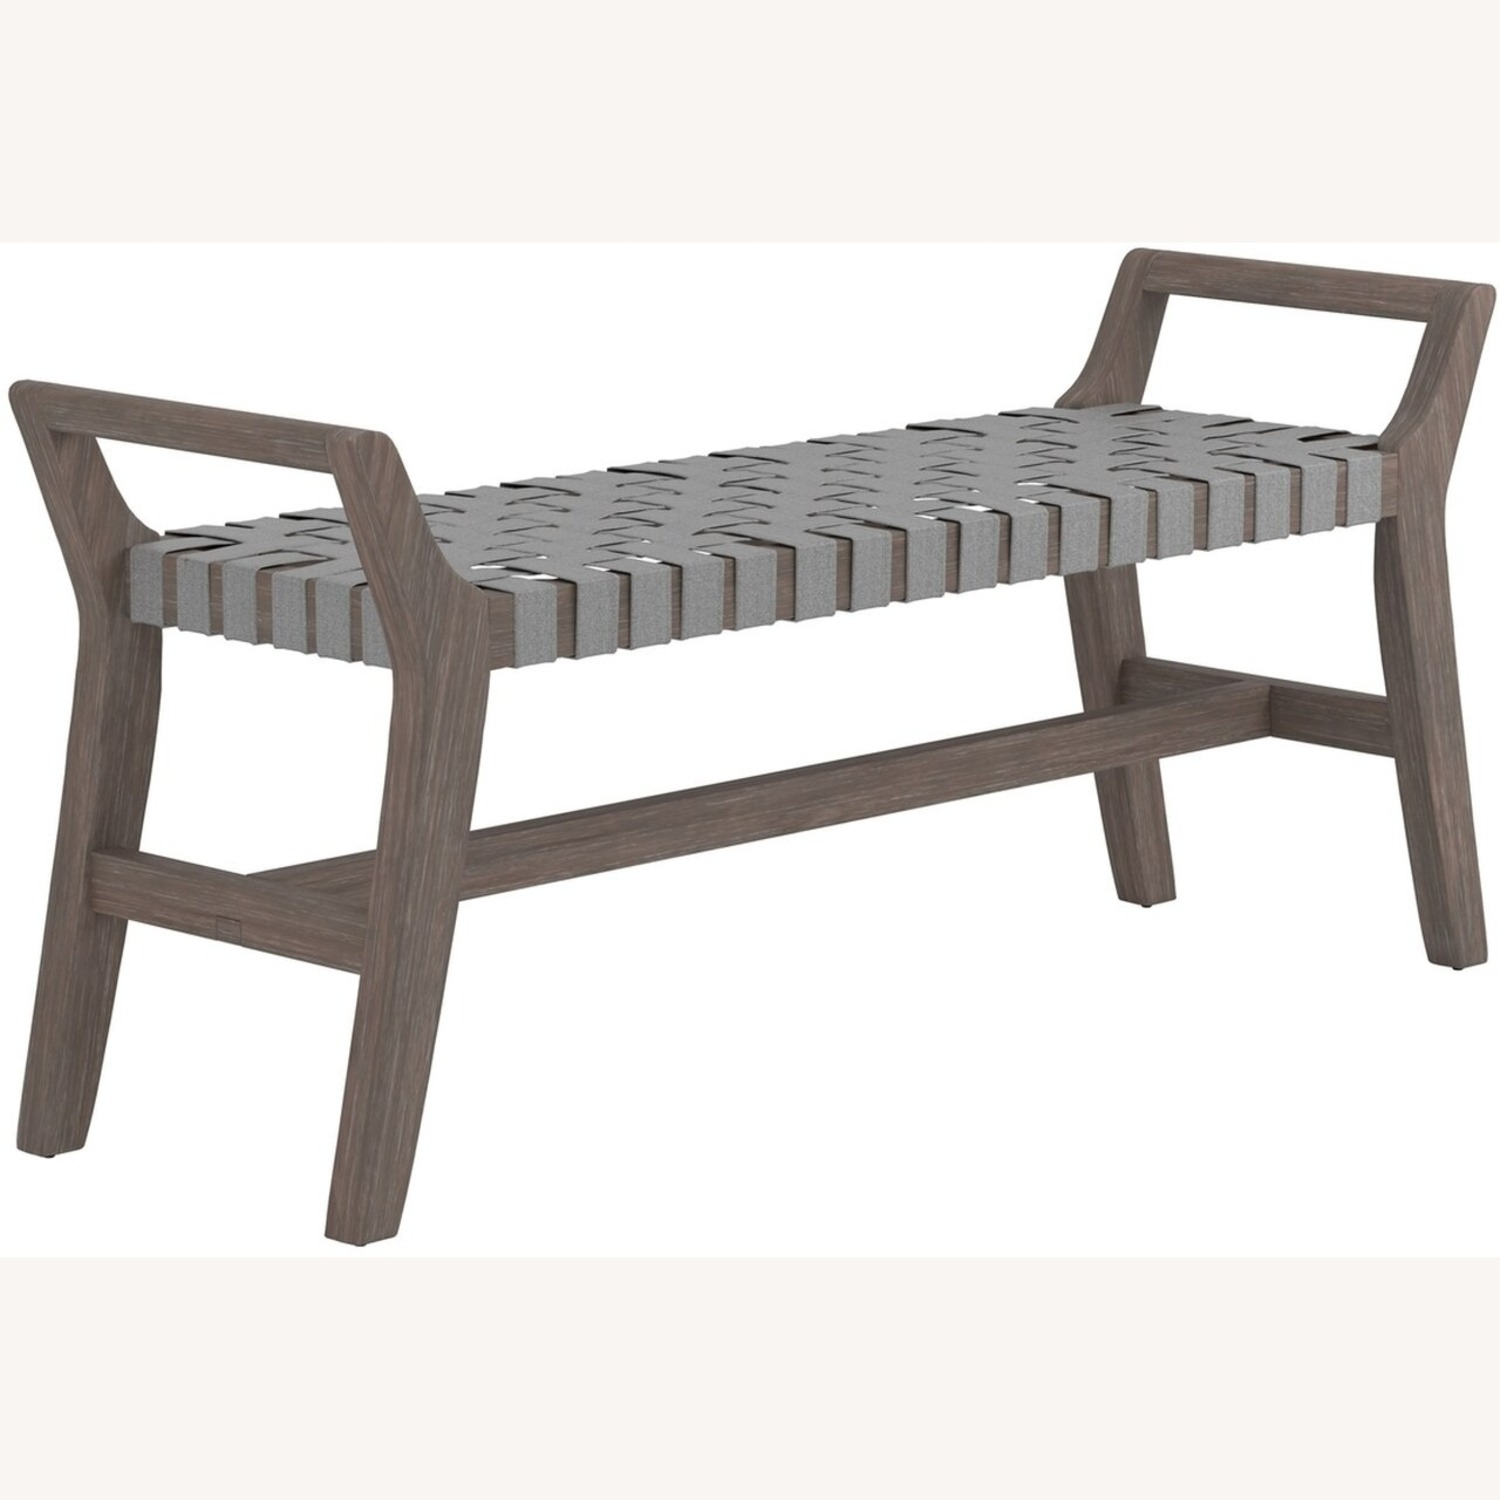 Modern Bench Made W/ Woven Grey Leatherette - image-0